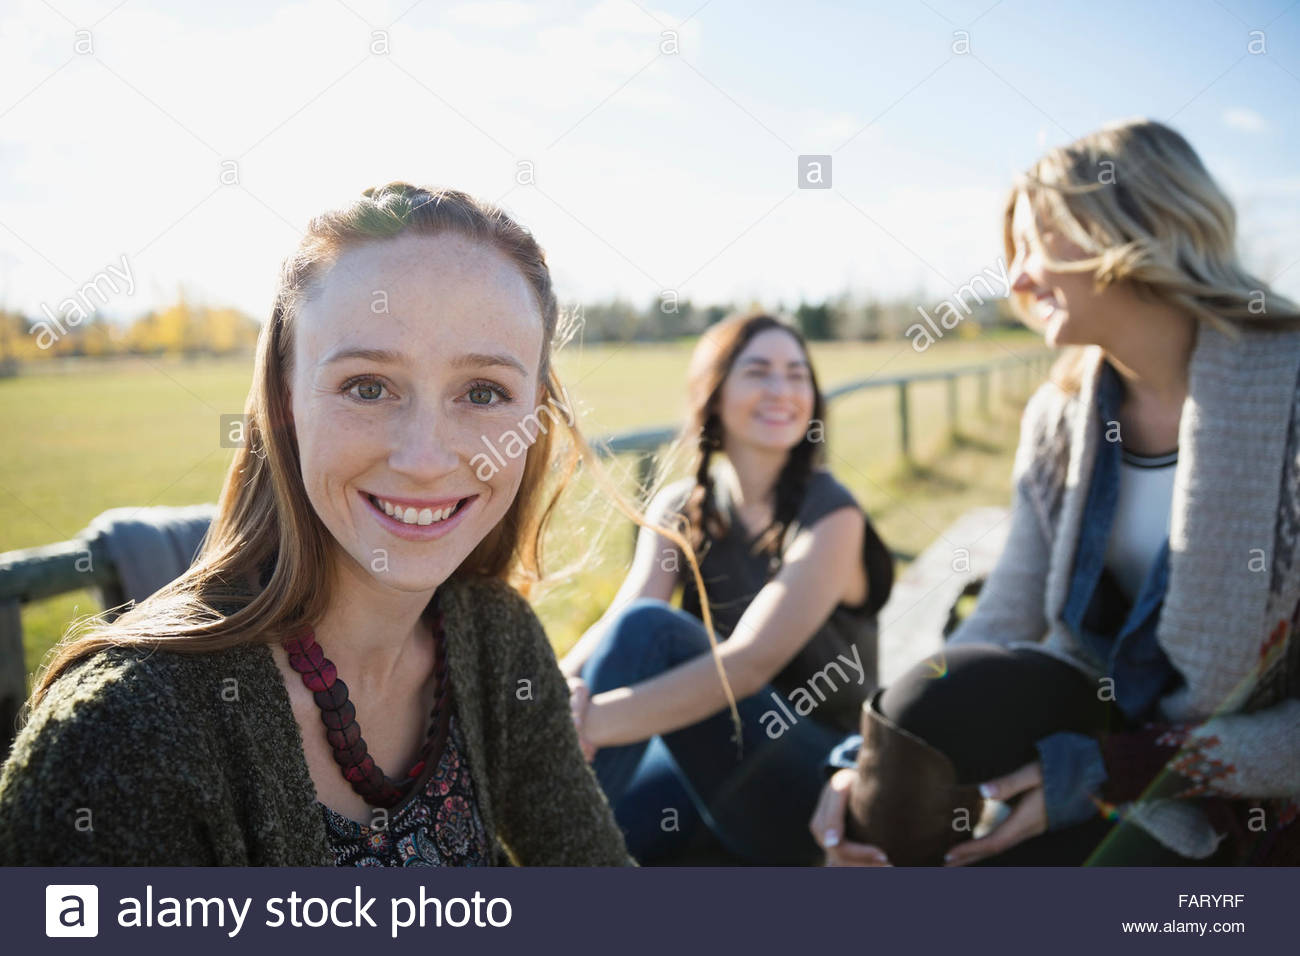 Portrait smiling young woman with friends in park - Stock Image